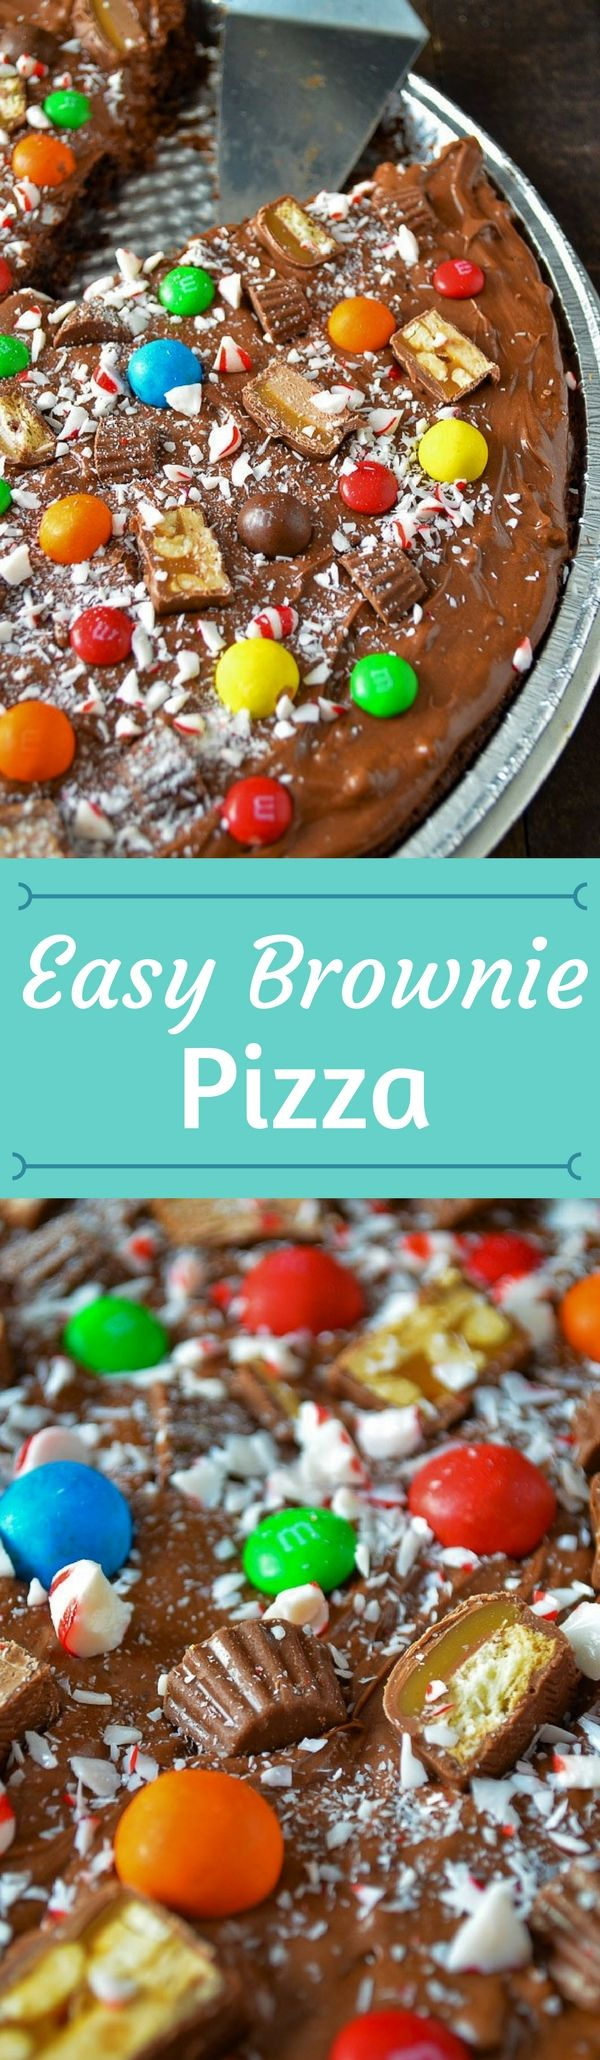 Put your leftover candy to good use and make this amazingly Easy Brownie Pizza! The family will eat it up!